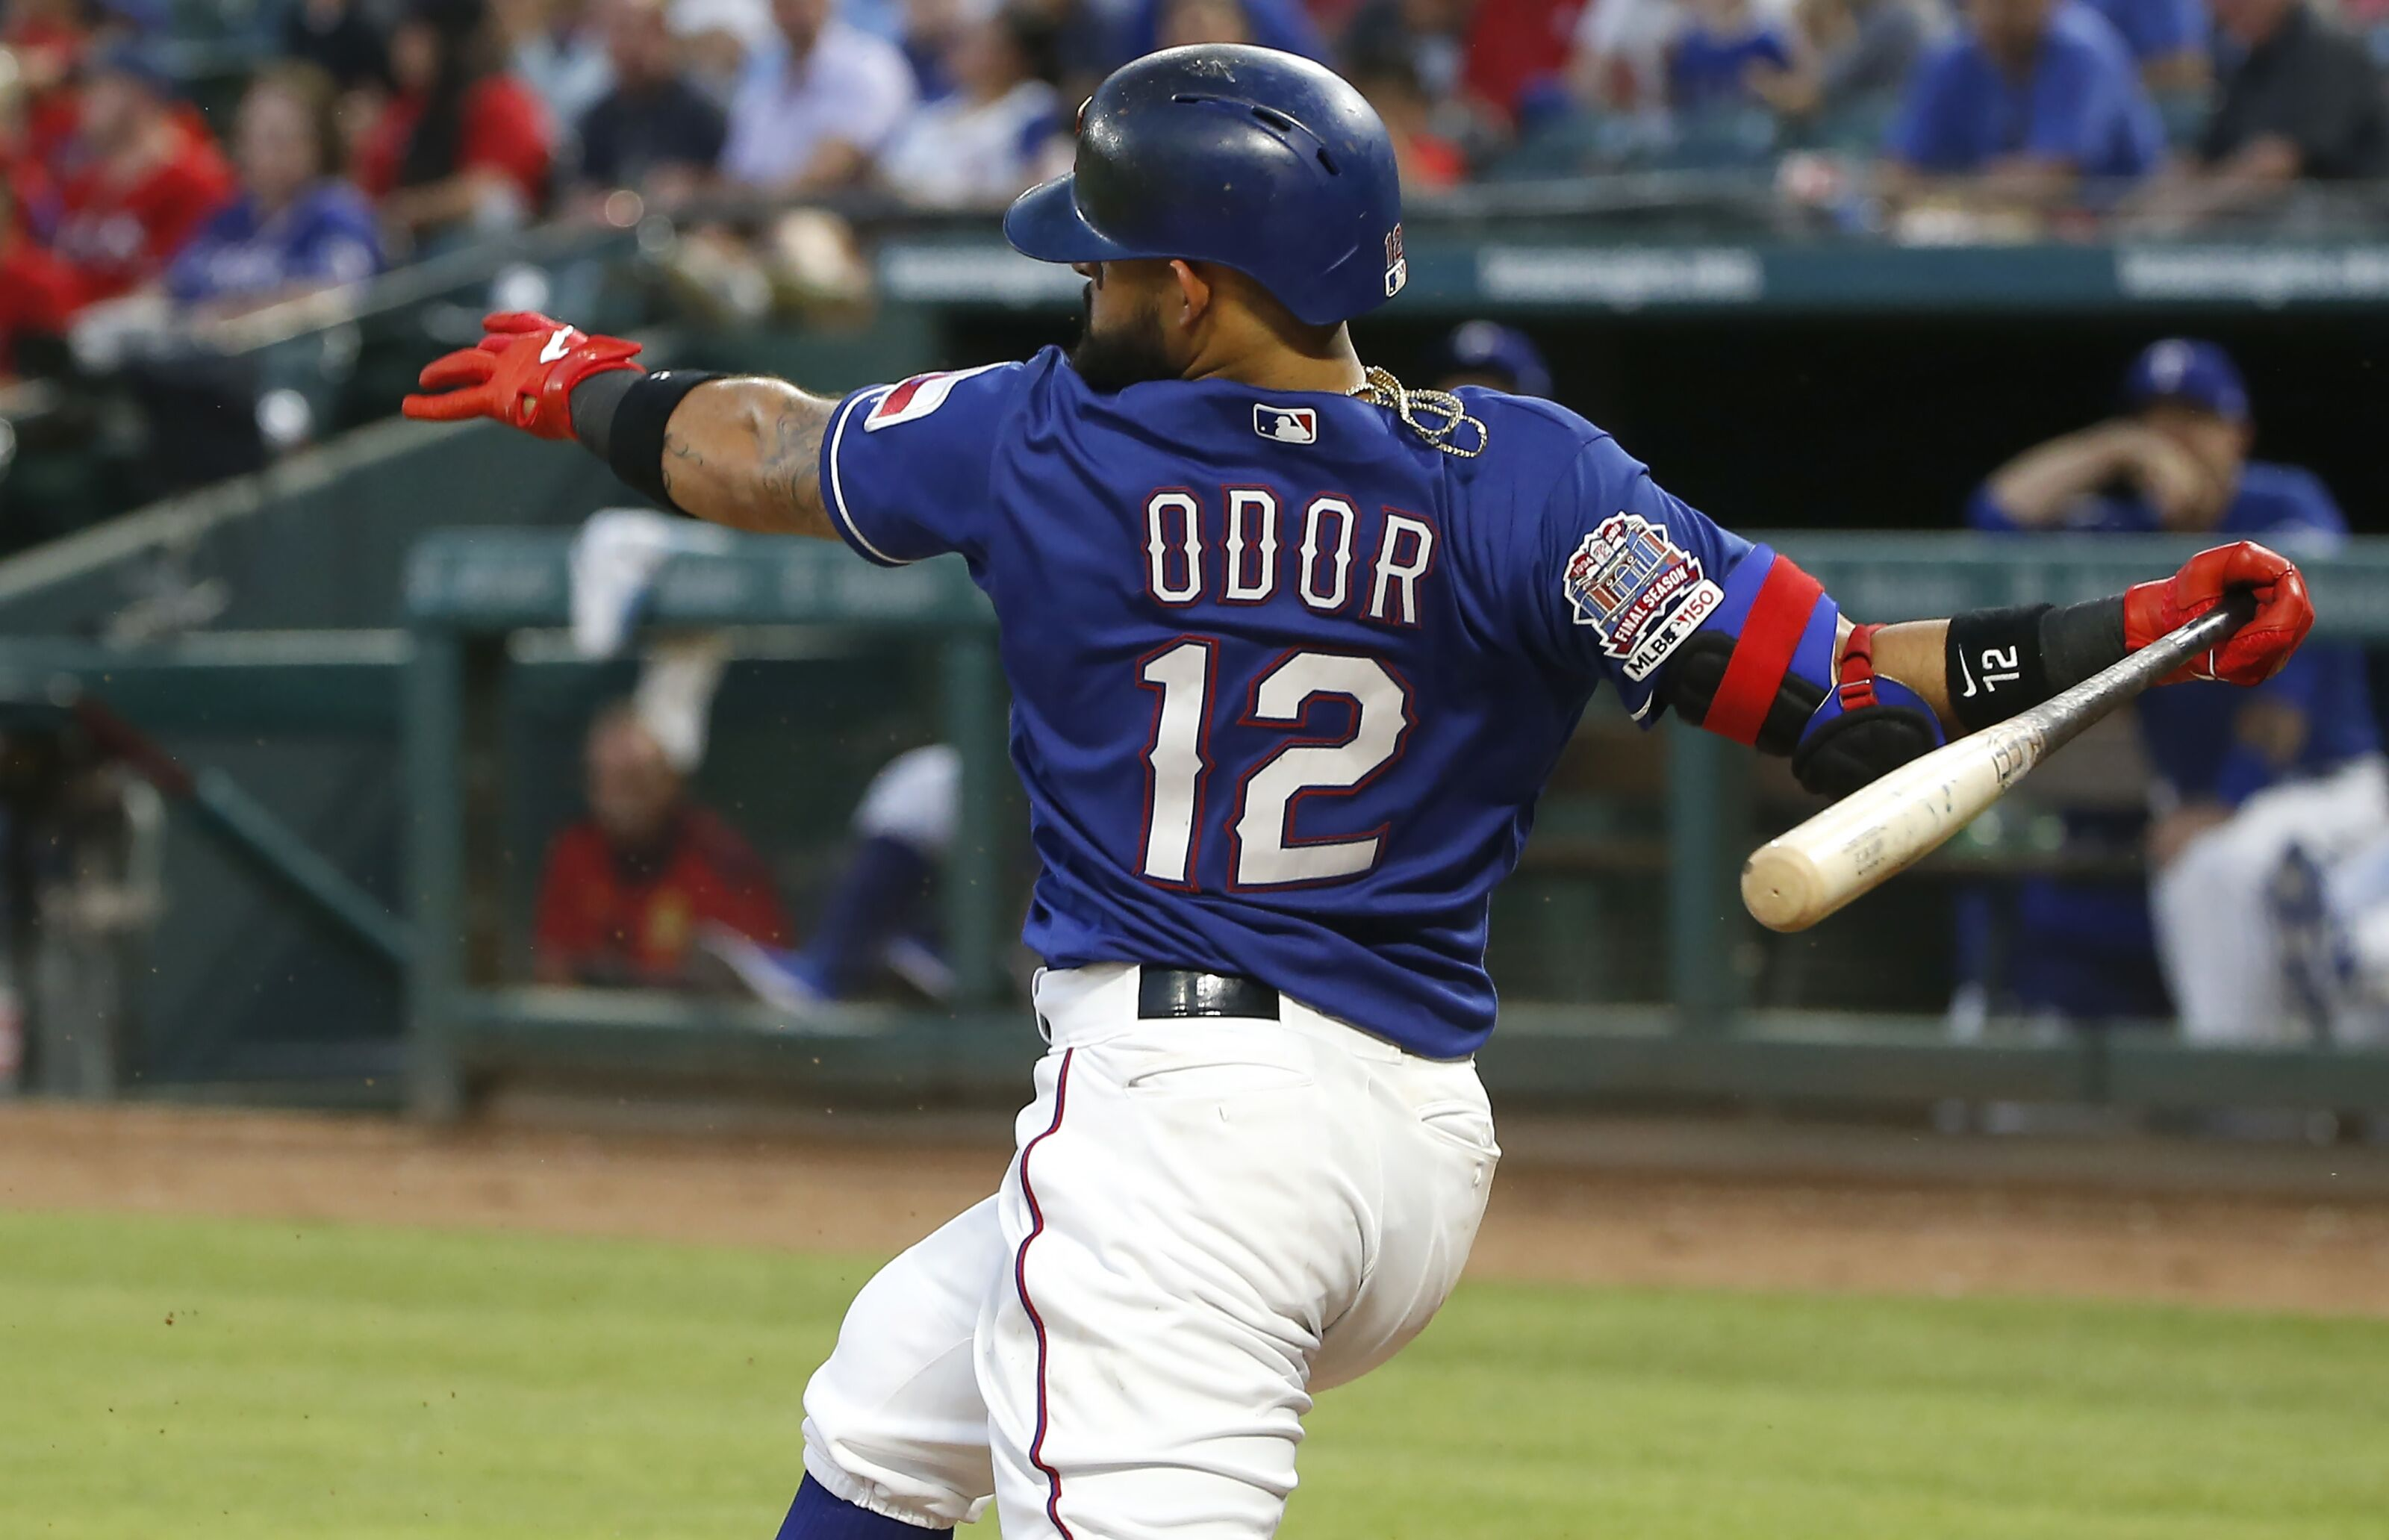 Texas Rangers: 2020 Positions Up For Grabs